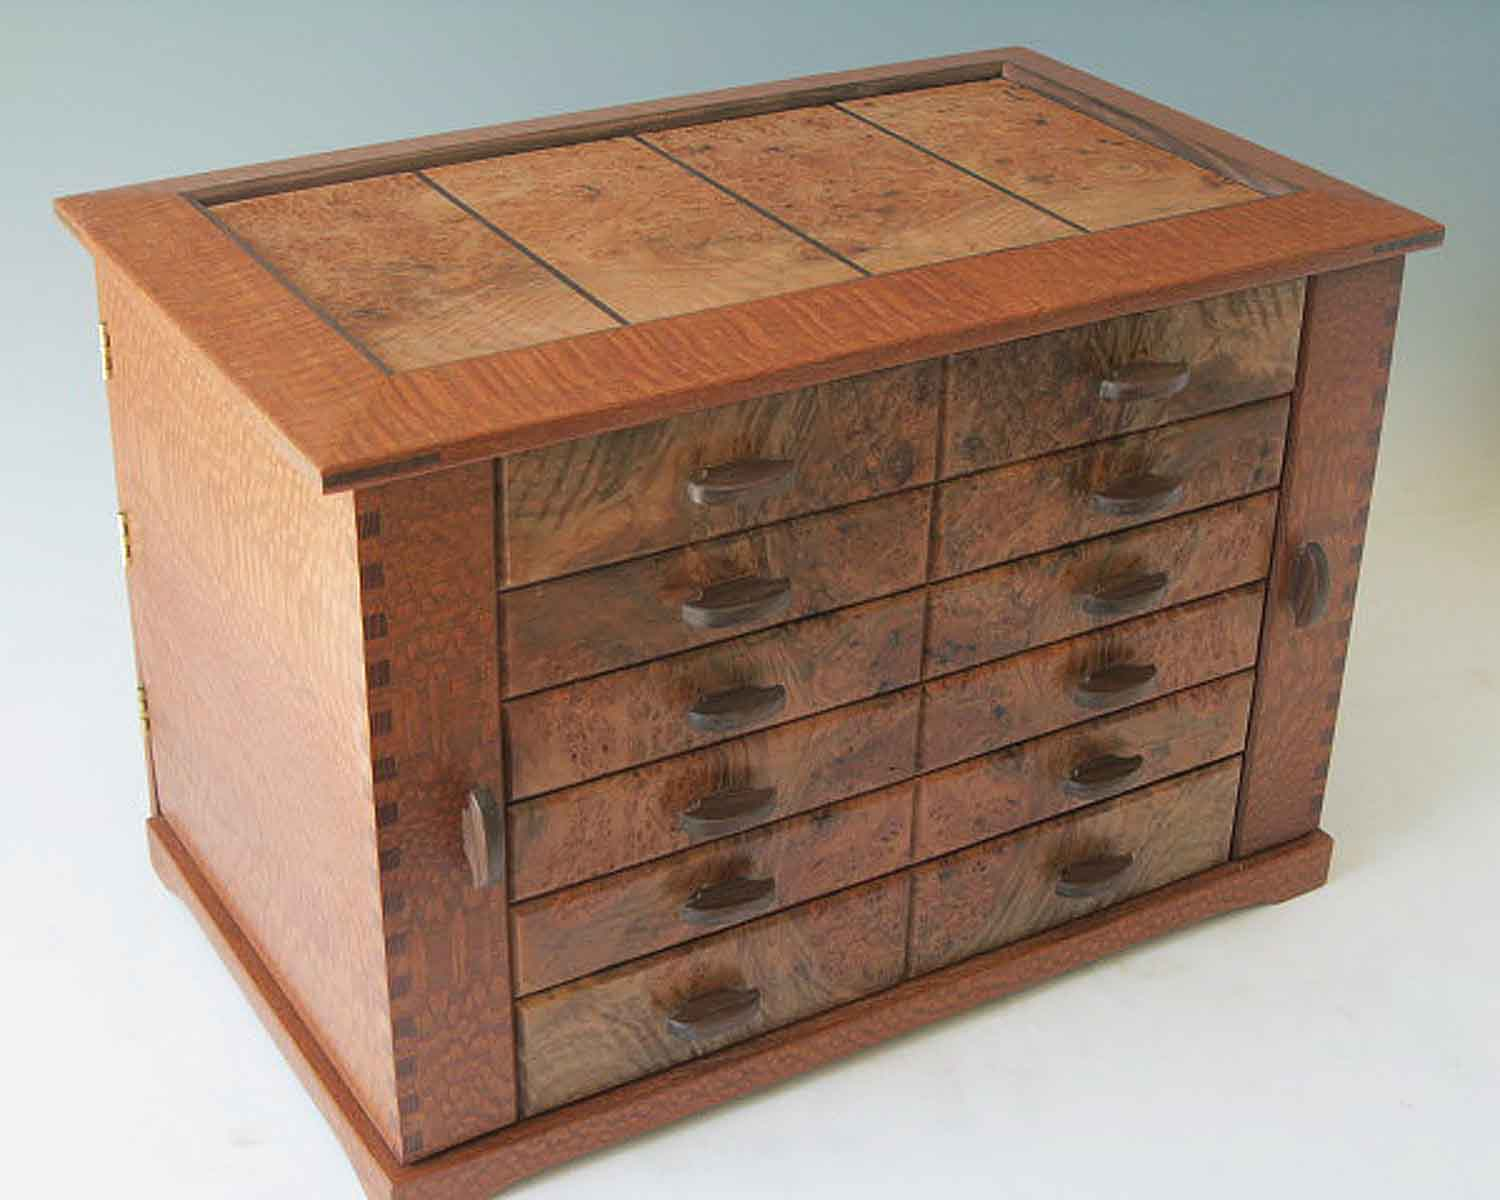 Handcrafted wood jewelry boxes - Prices For This Box Range From 950 1100 Depending On The Wood